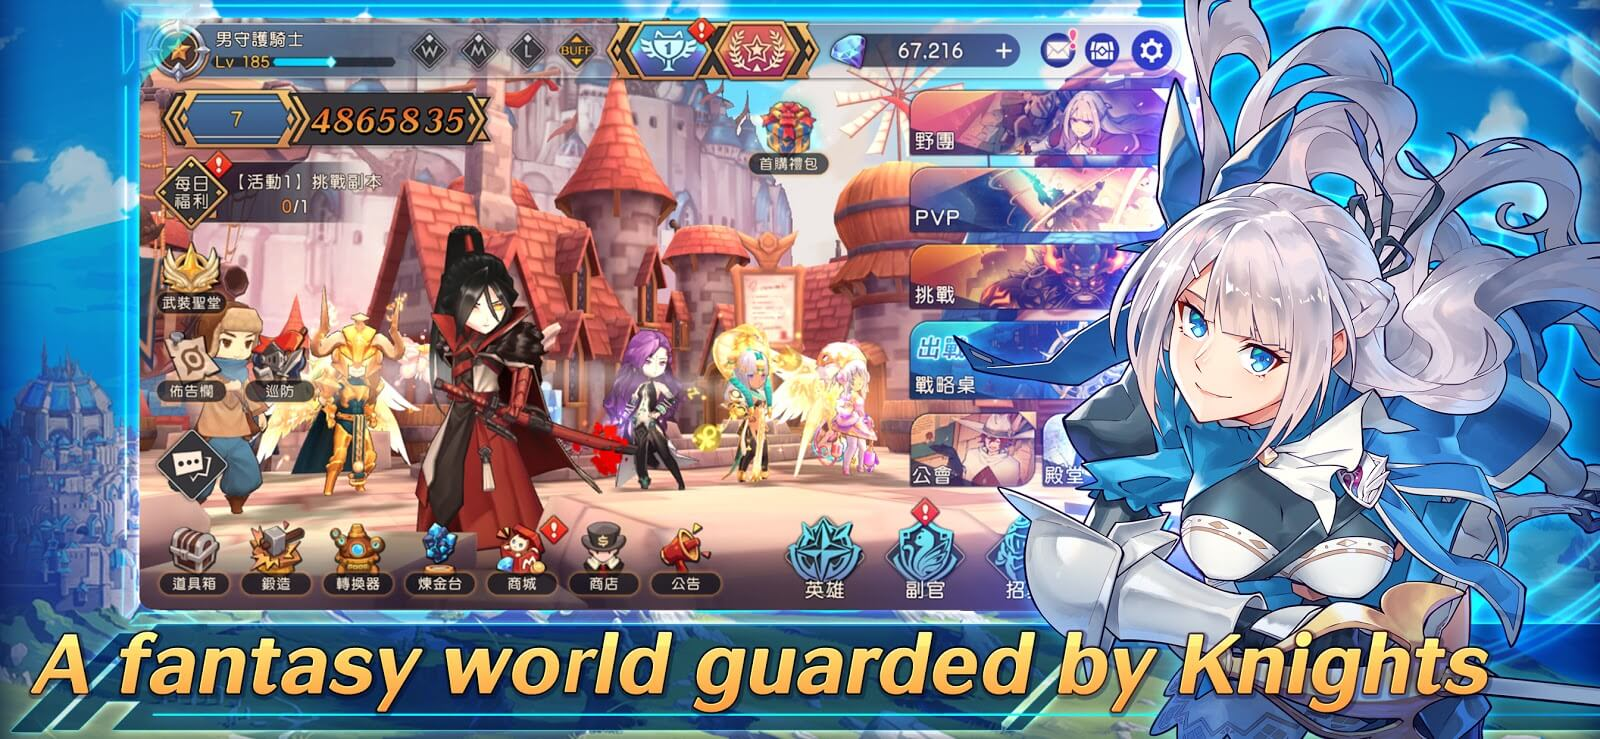 Knightcore Universal - Anime Style Mobile Game